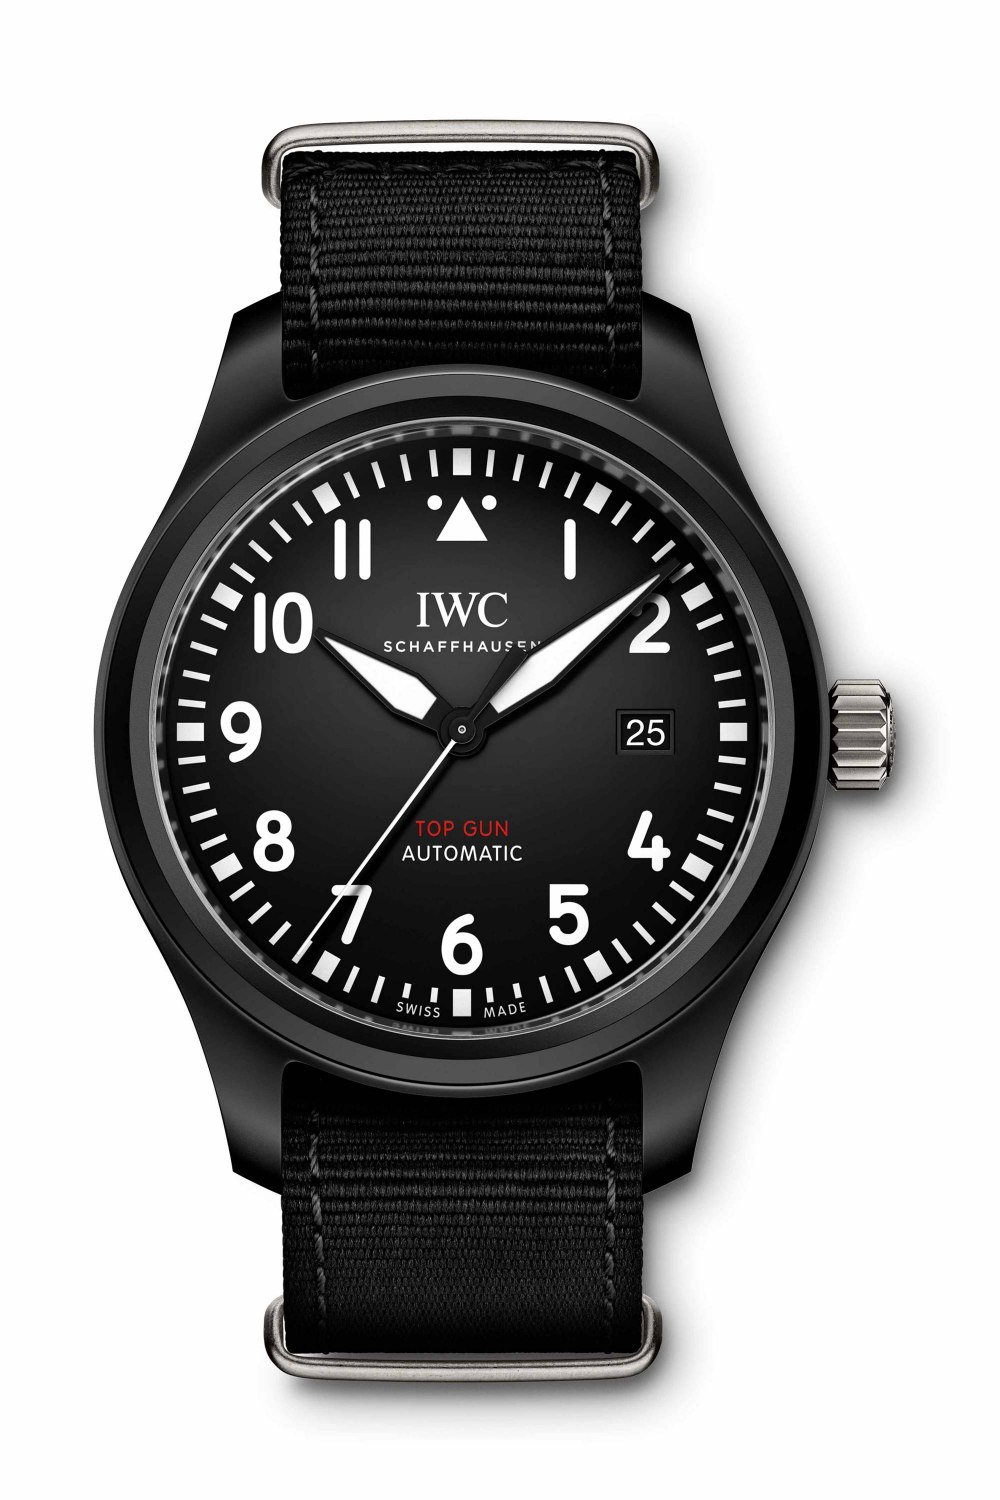 IWC SCHAFFHAUSEN Pilot's Watch Automatic Top Gun IW326901